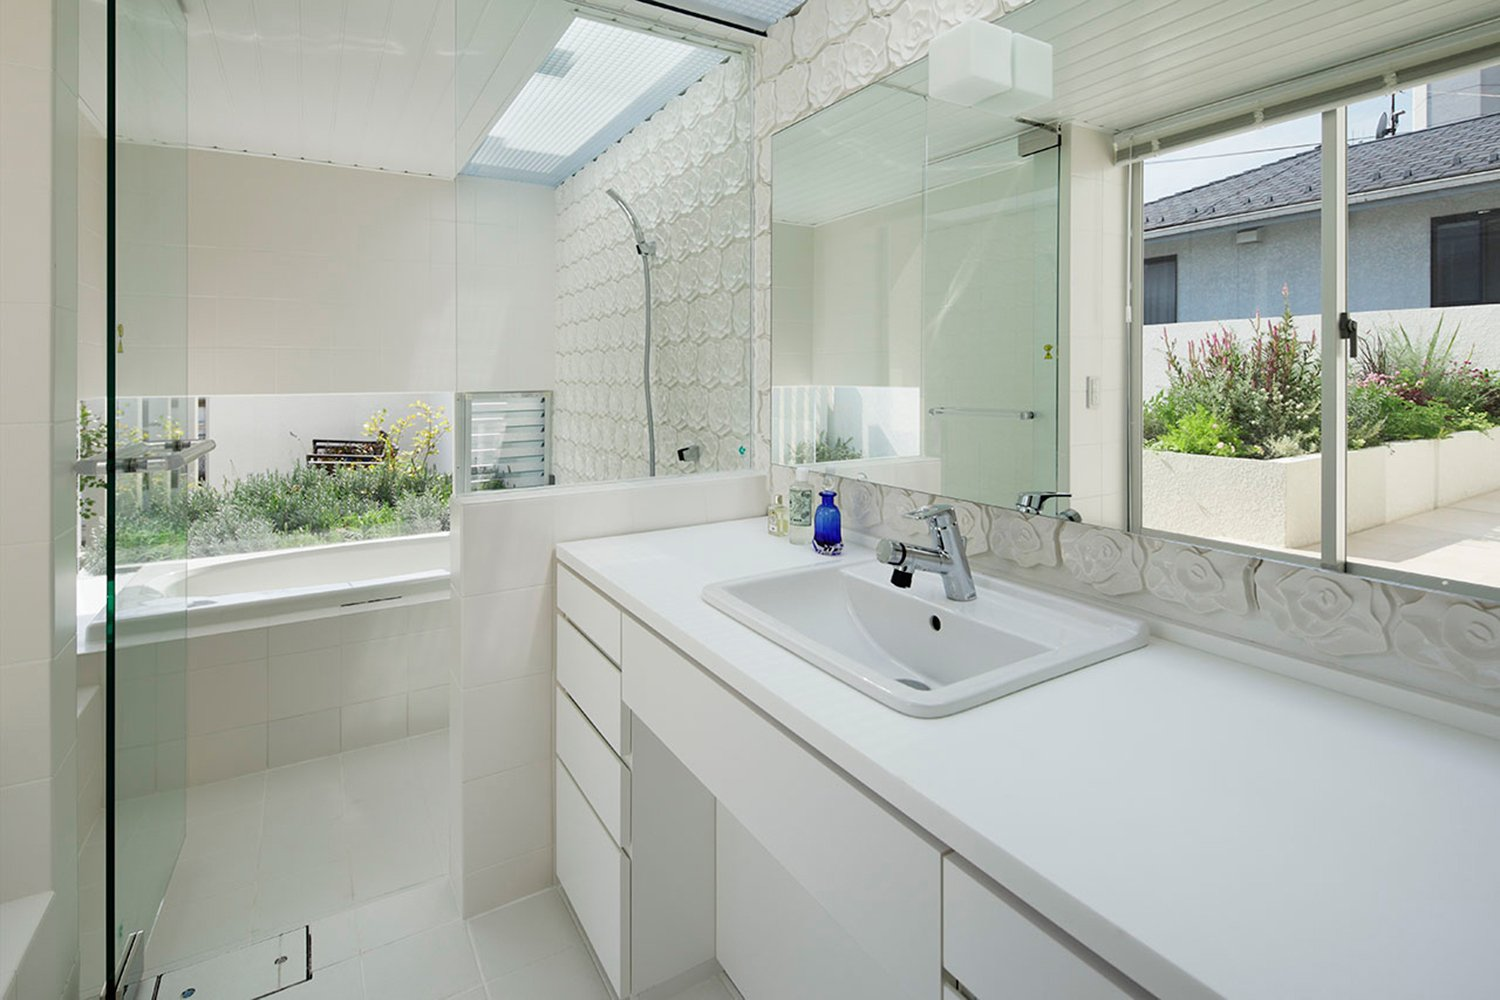 Bath room. A white and clean space. Light pours from the top light. }